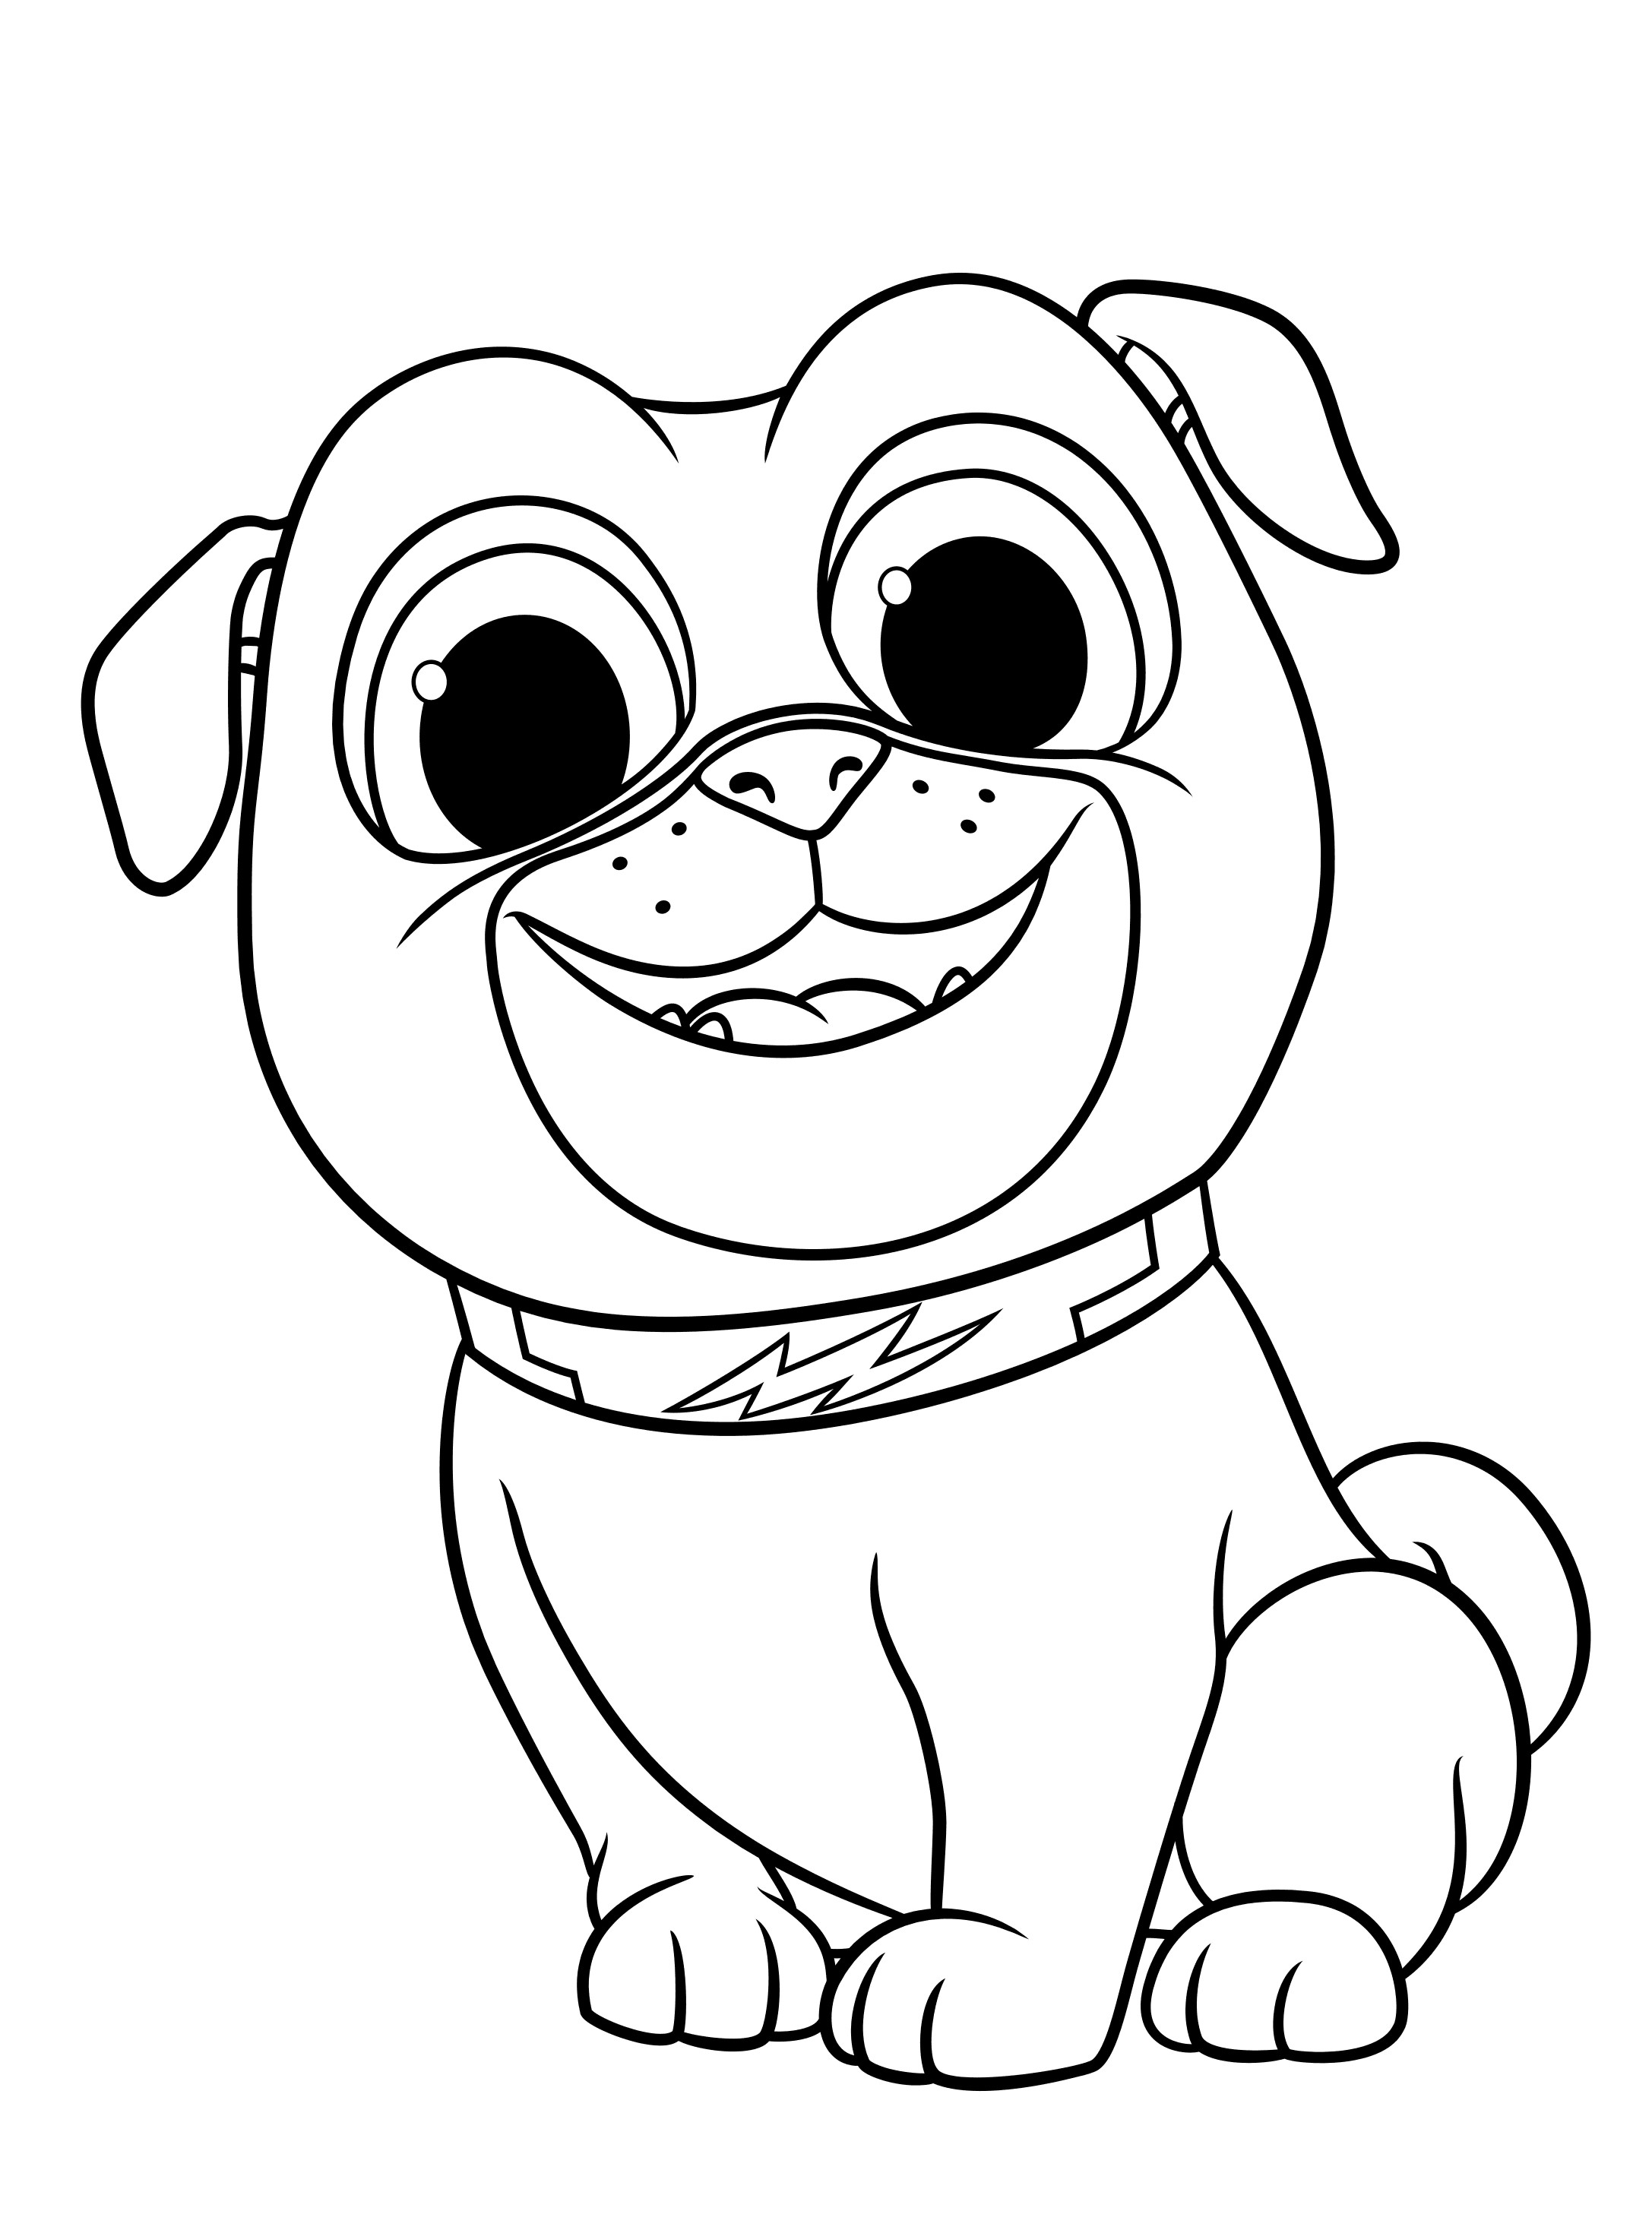 colouring pages of dog puppy dog pals coloring pages to download and print for free dog of pages colouring